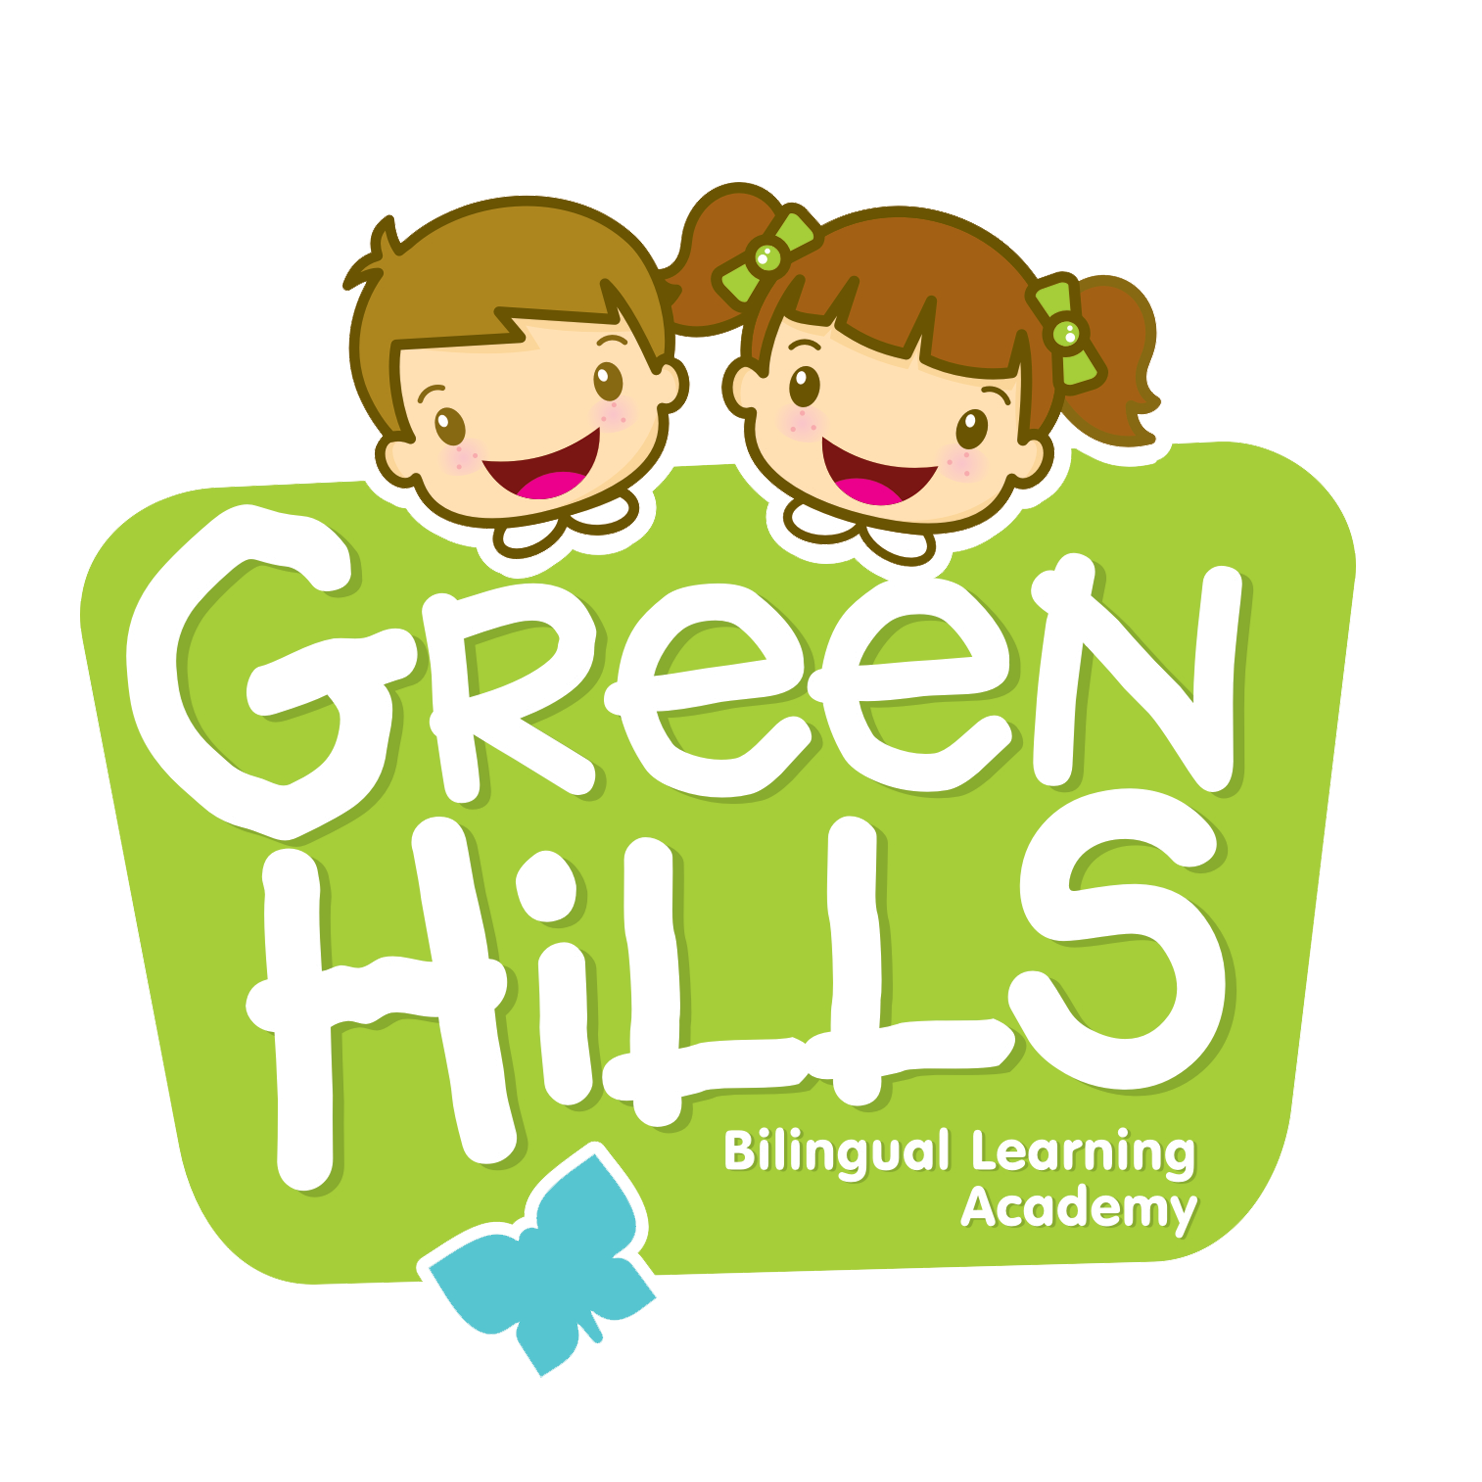 Green Hills Bilingual Learning Academy